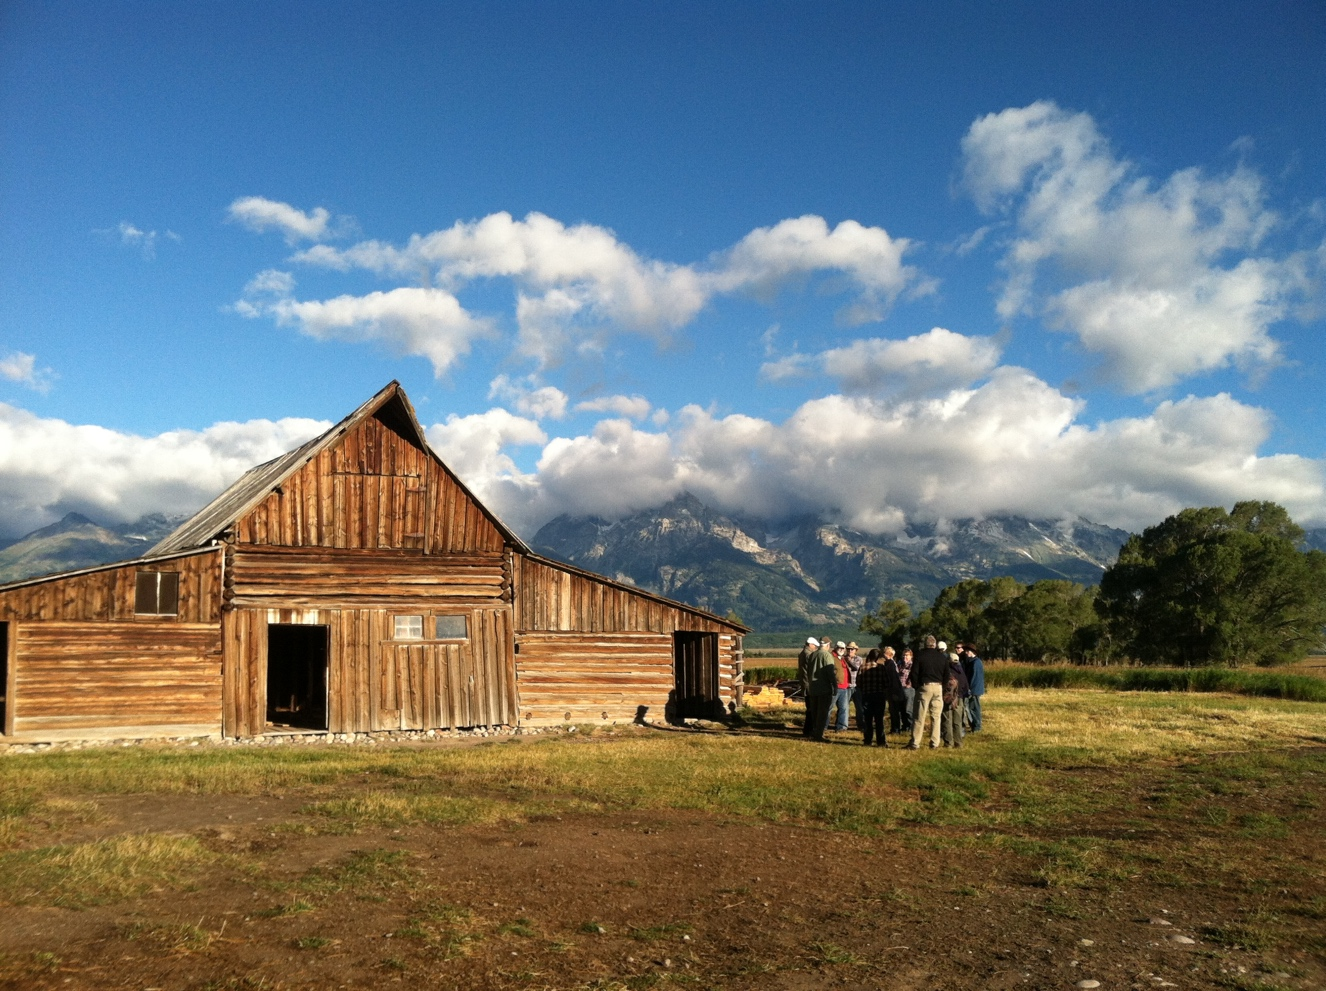 Volunteers gather at the historic T.A. Moulton Barn in Grand Teton National Park